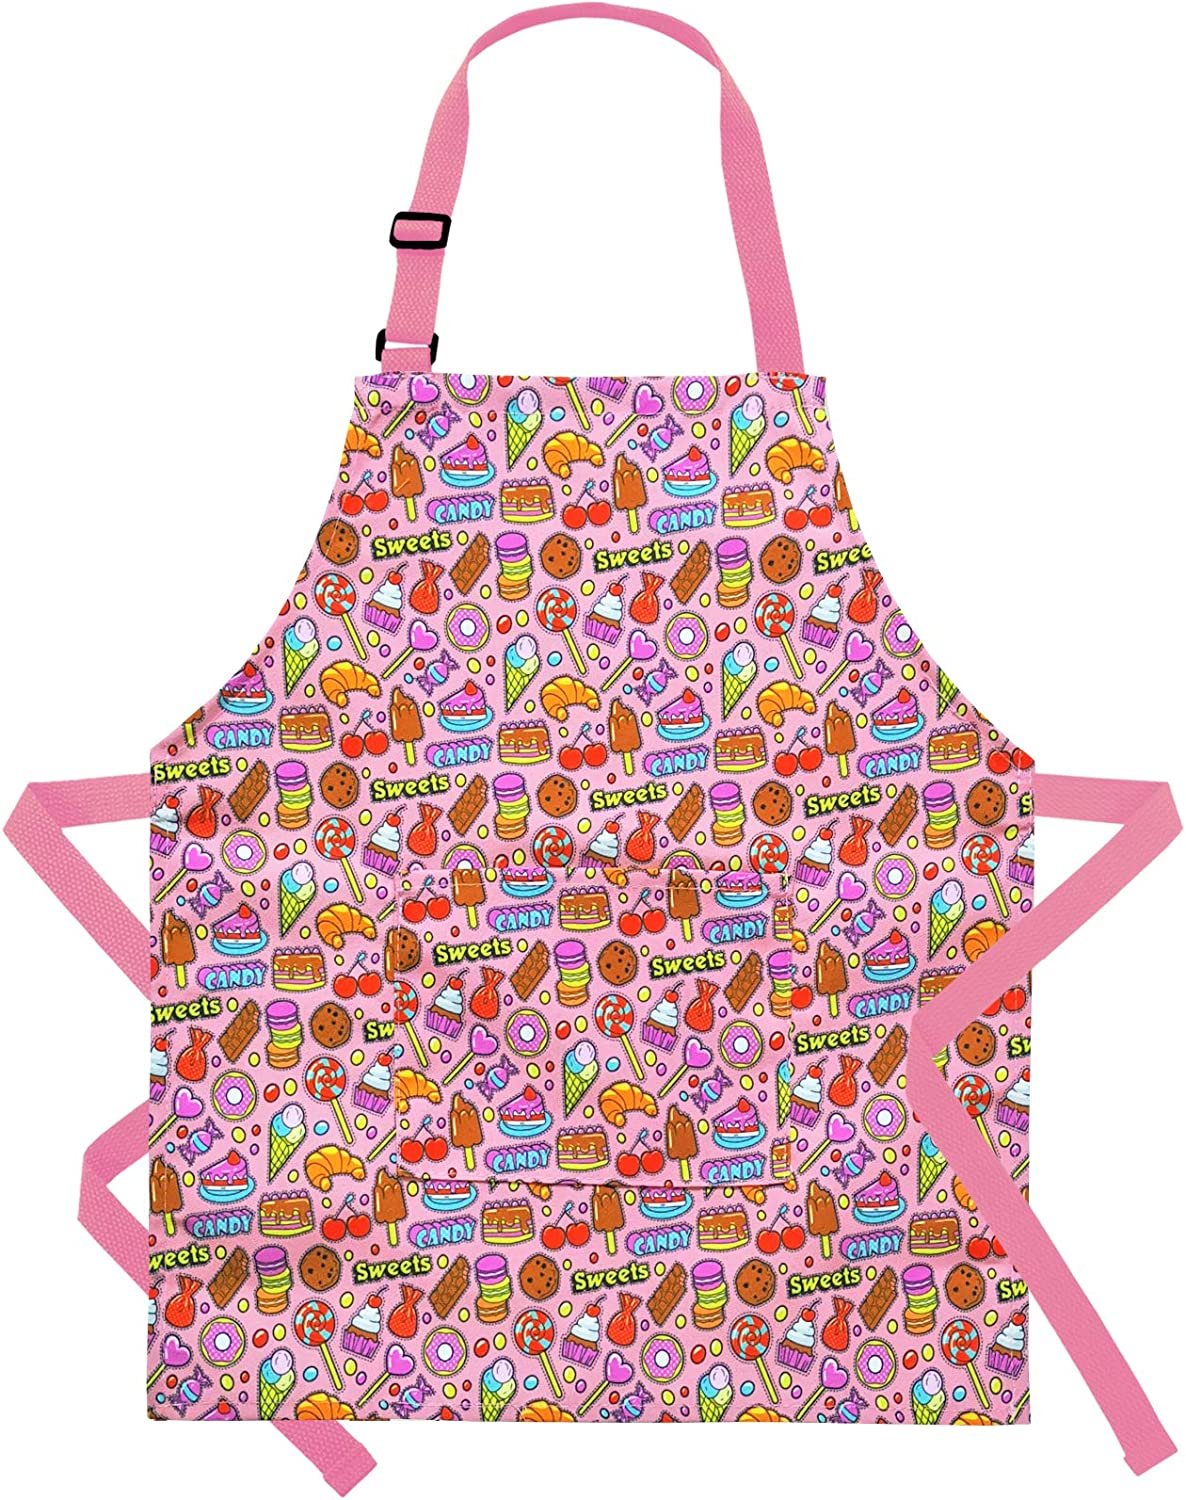 Kids Aprons Child Apron Cotton Children Aprons with Adjustable Neck Strap for Boys Girls Cooking Baking Painting Gardening